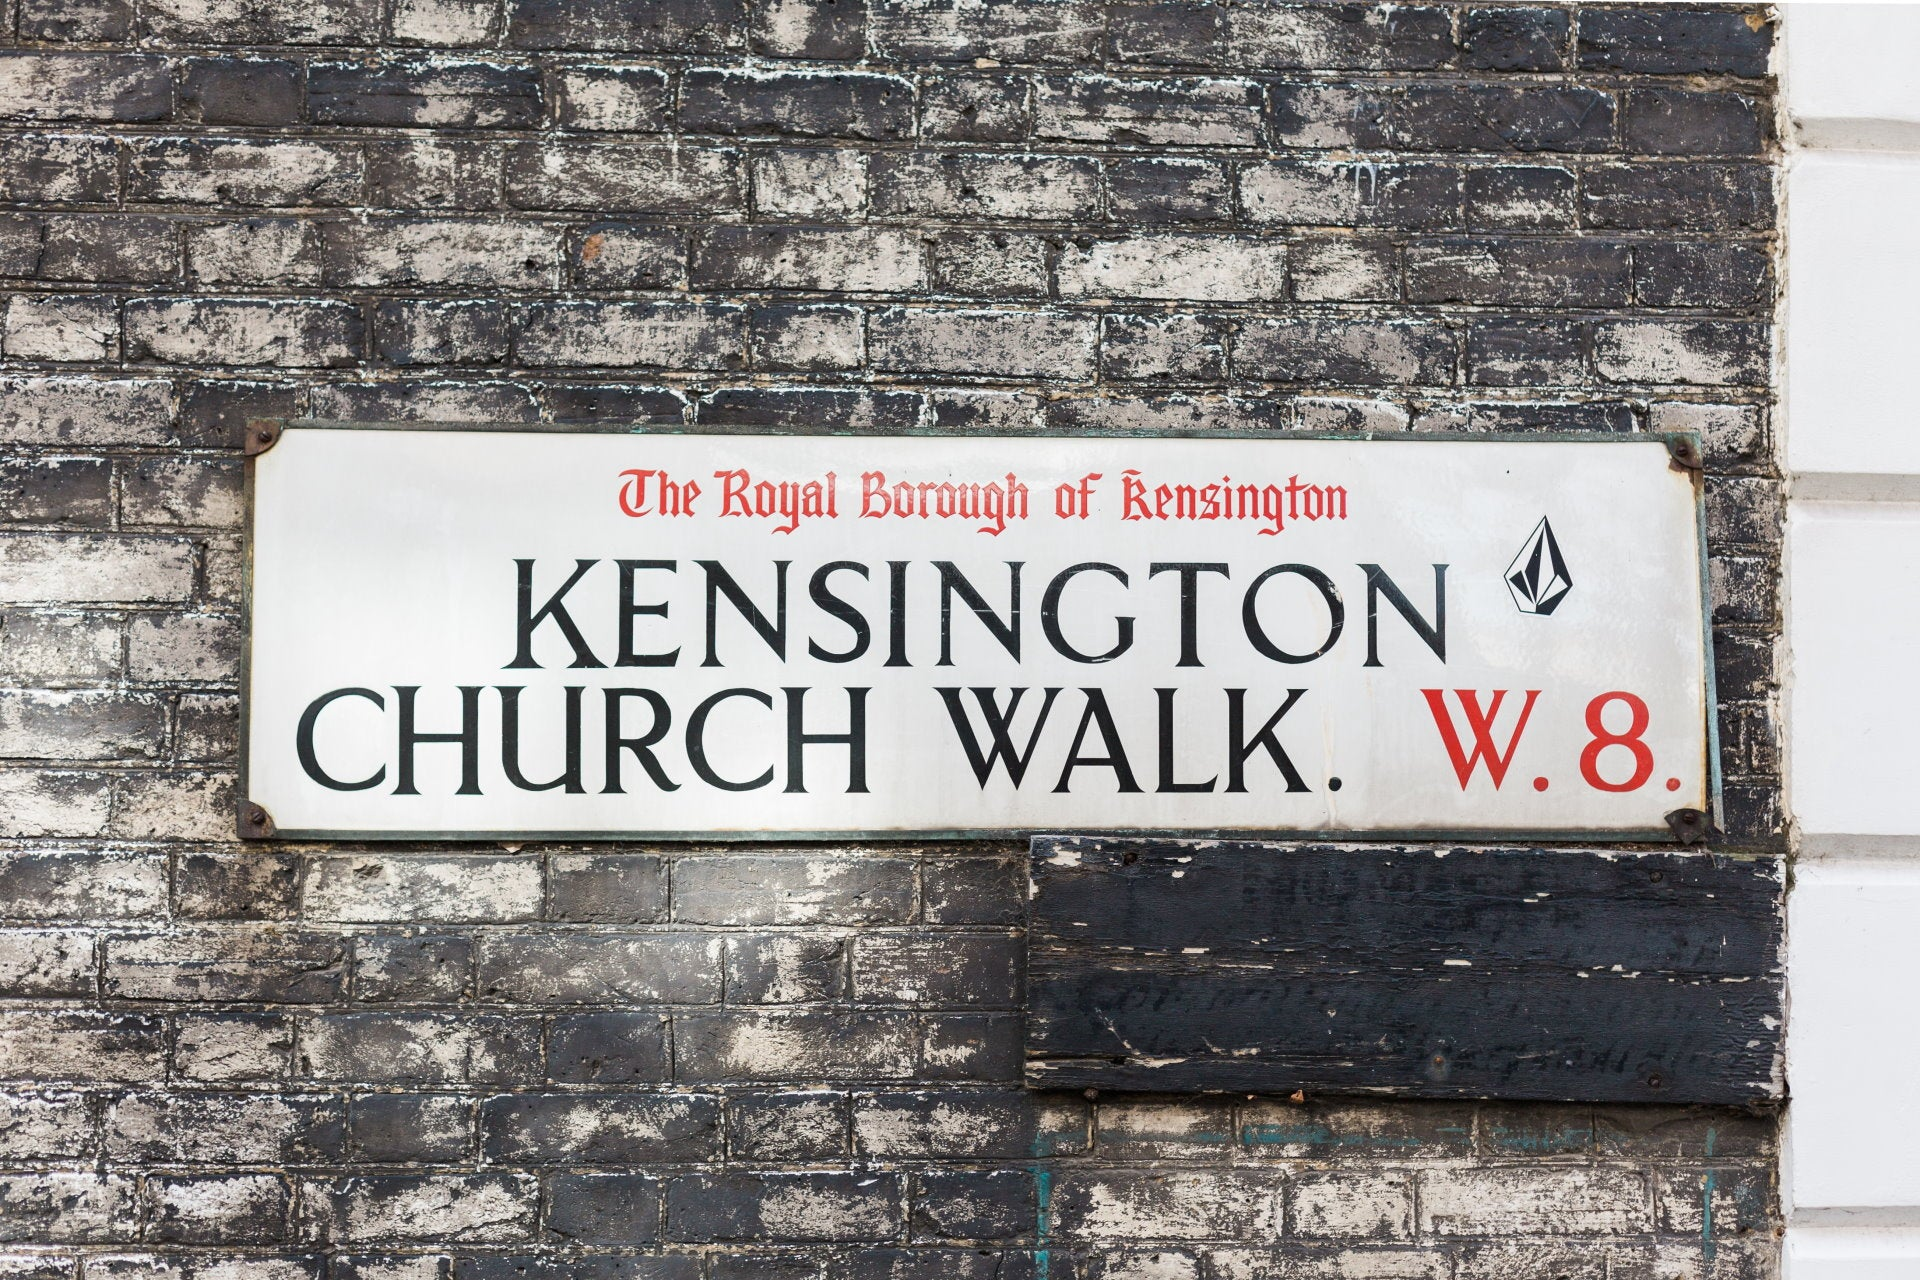 Popular Nightlife Destinations in Kensington, London